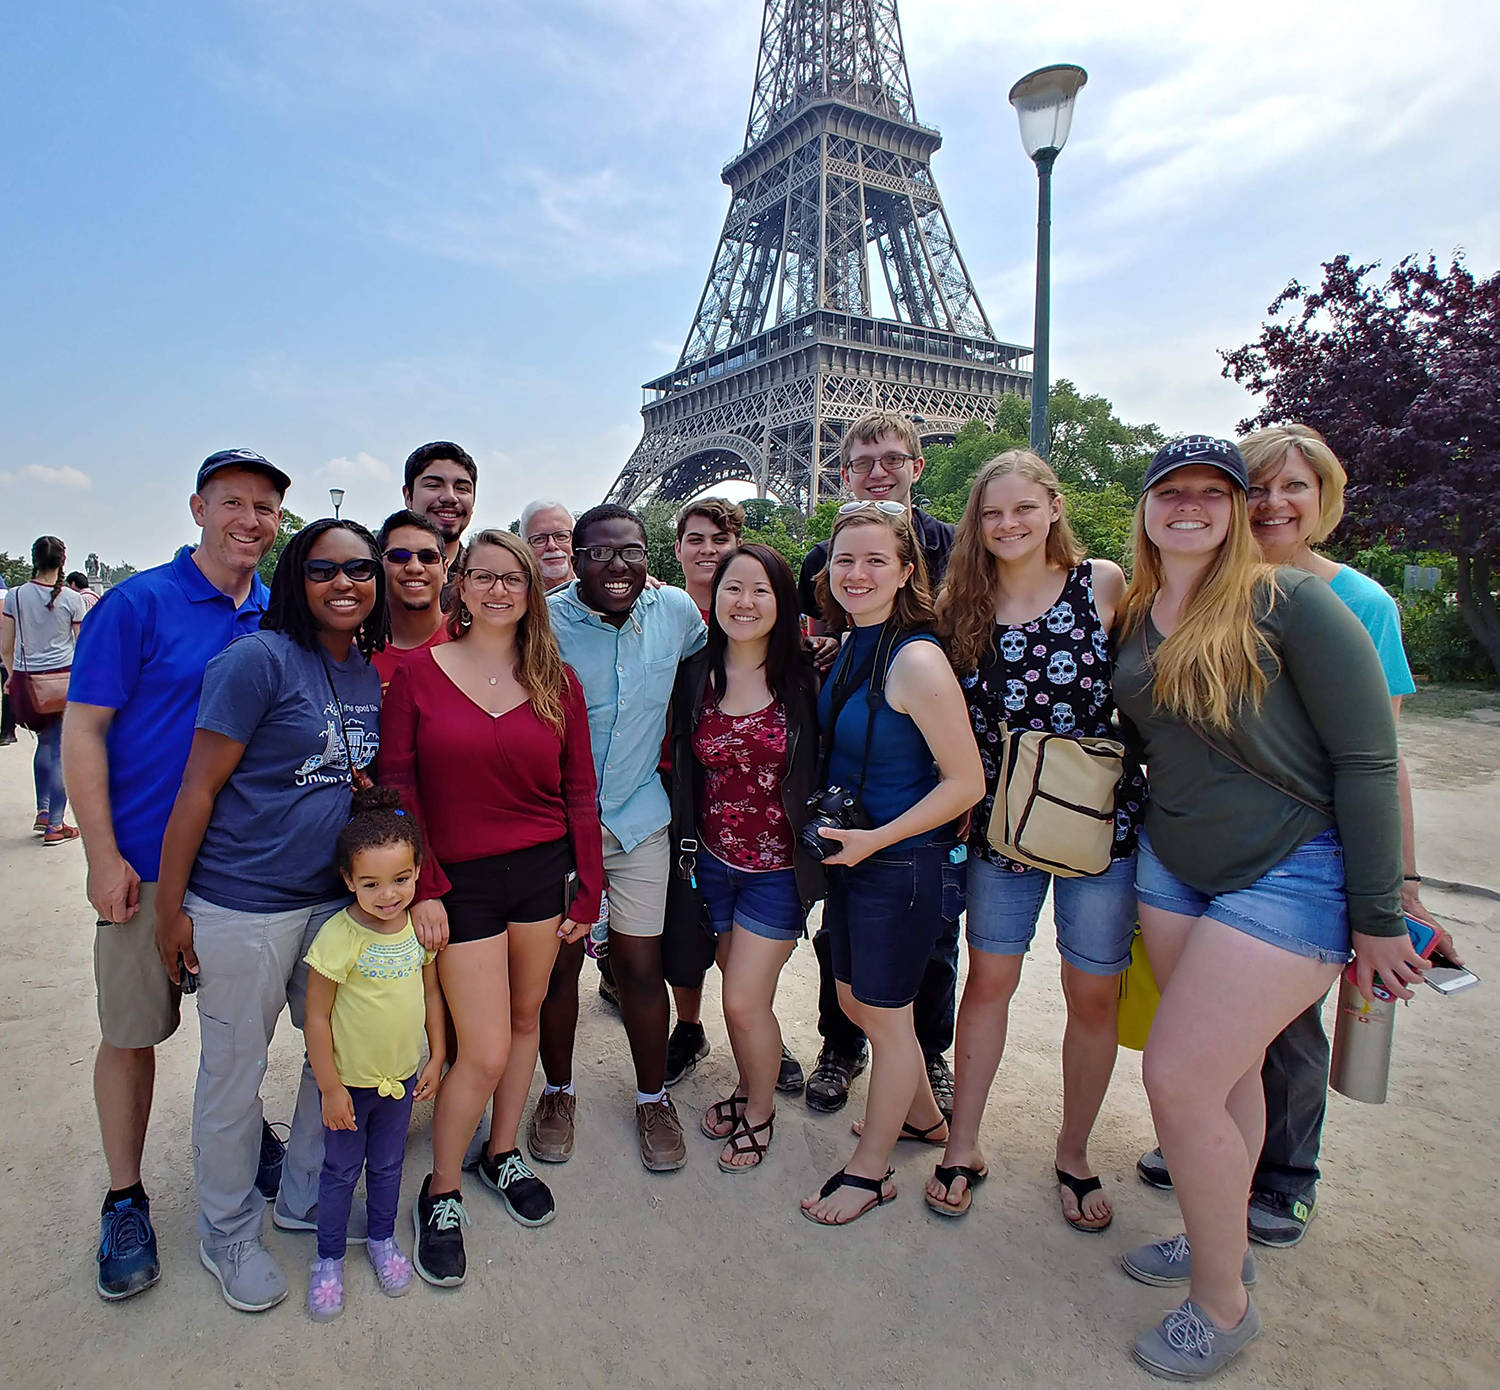 Union honors group picture in front of Eiffel Tower